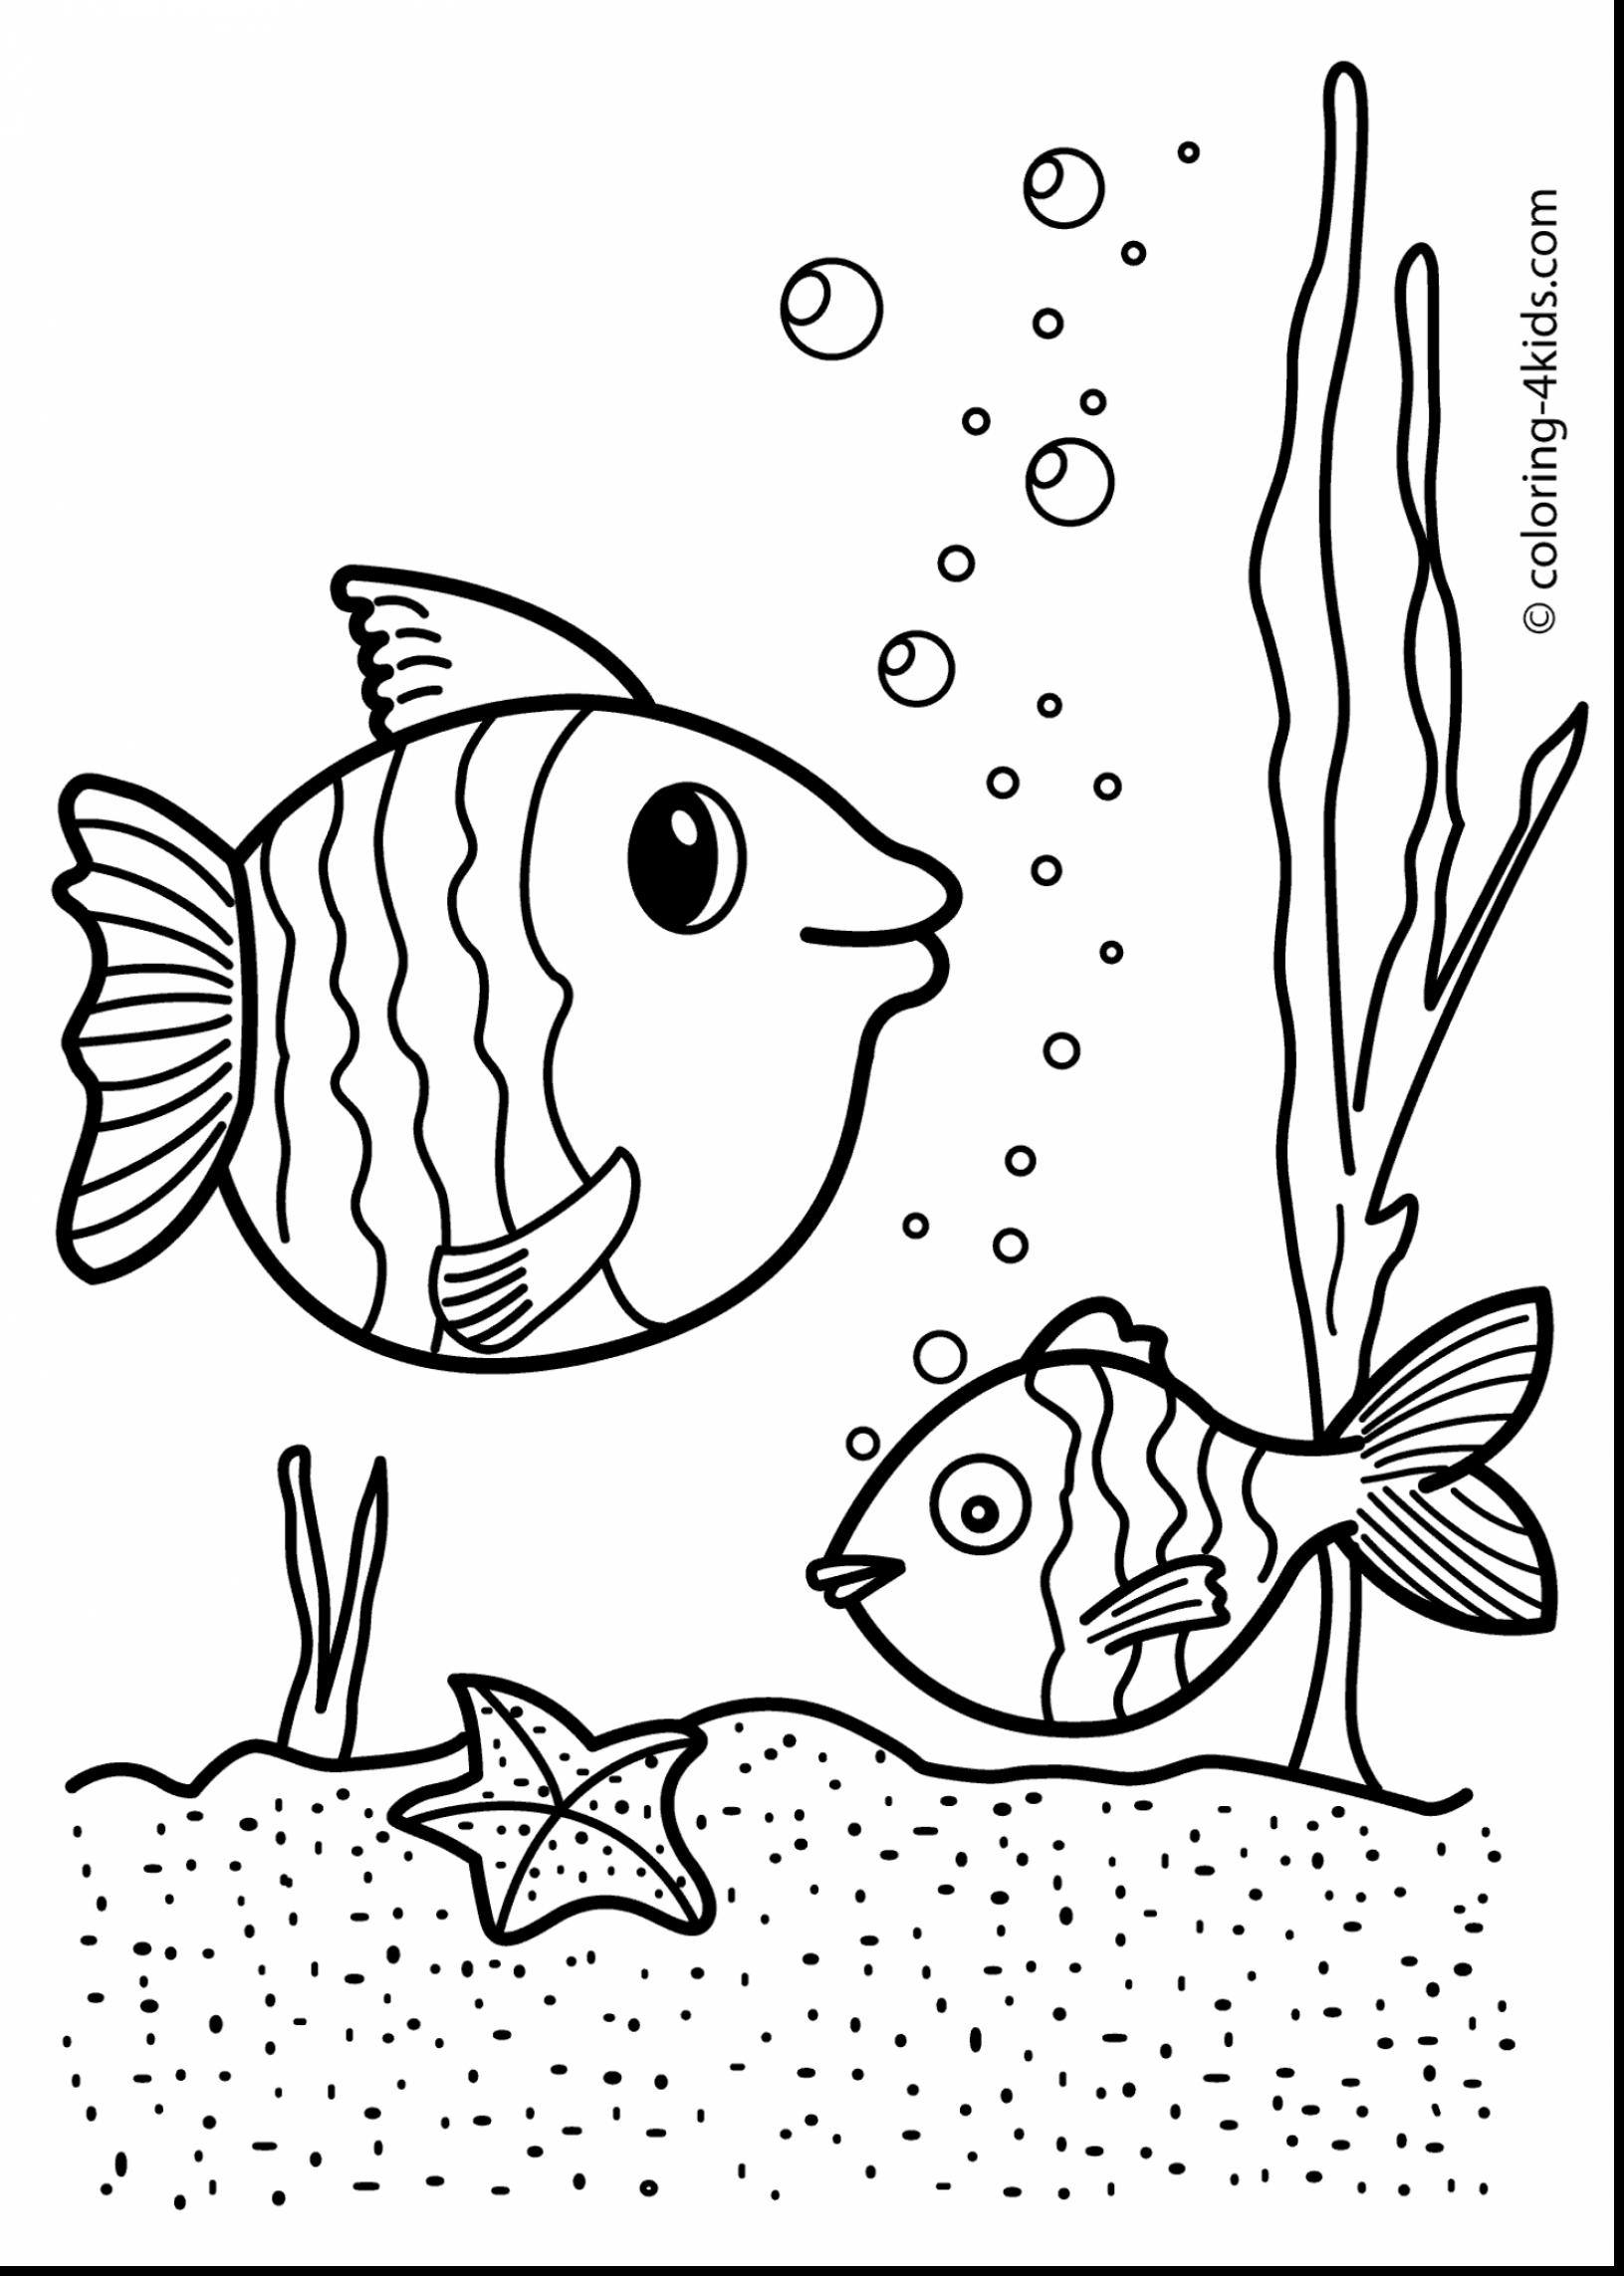 colouring pictures of nature nature scenes drawing at getdrawings free download pictures of colouring nature